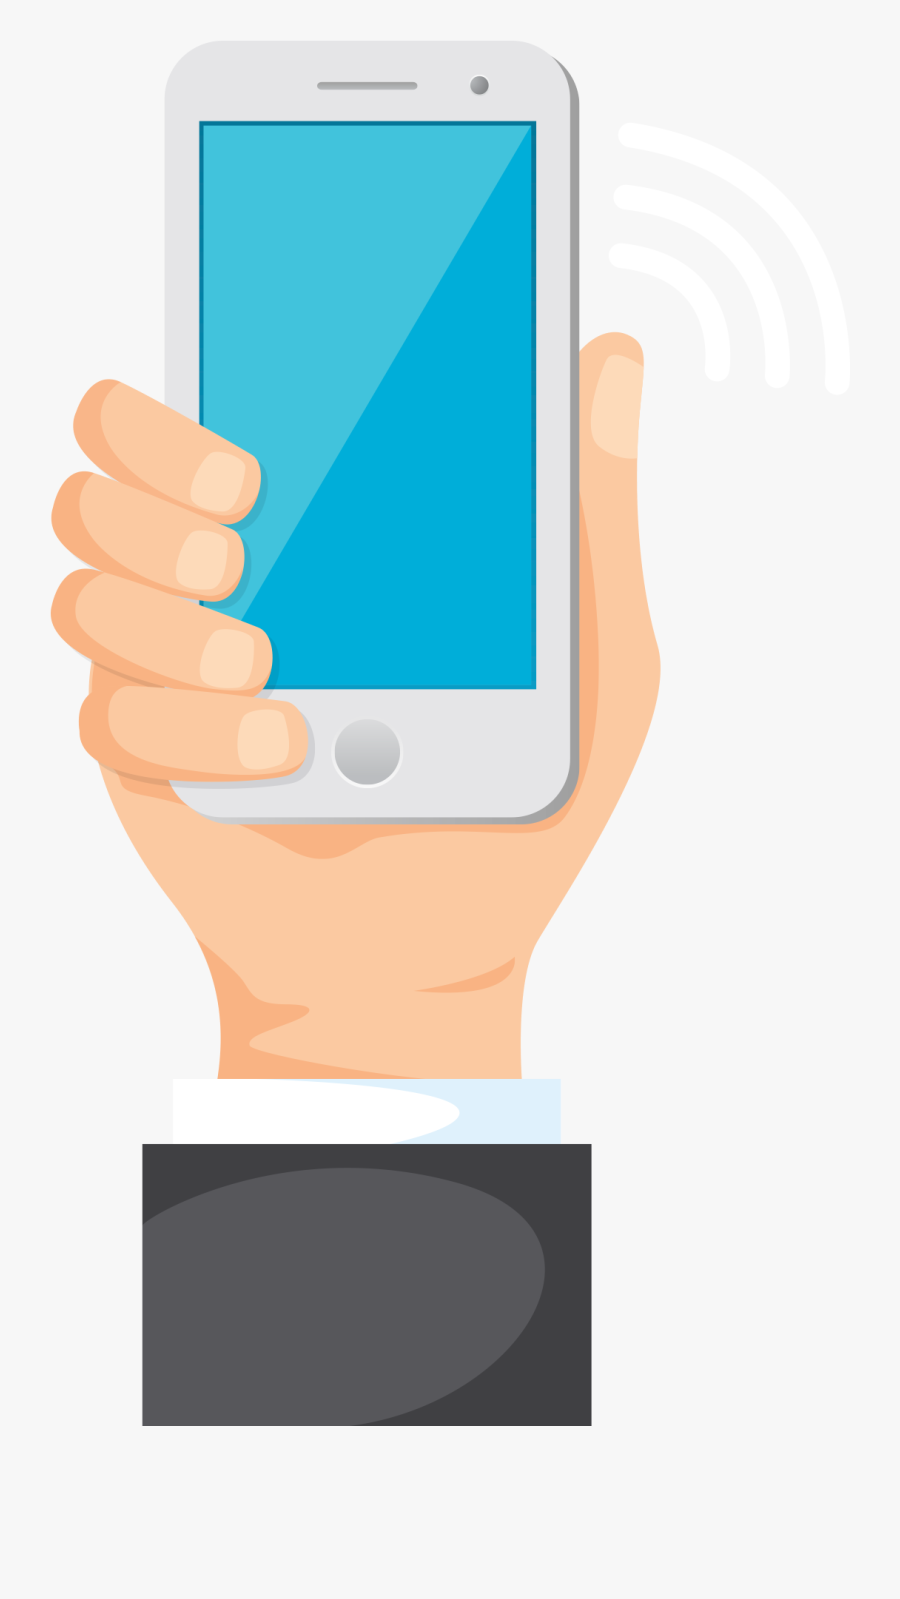 Phone In Hand Clipart Mobile With Hand Png Clipart Free Transparent Clipart Clipartkey Seeking more png image master hand png,back of hand png,gun in hand png? mobile with hand png clipart